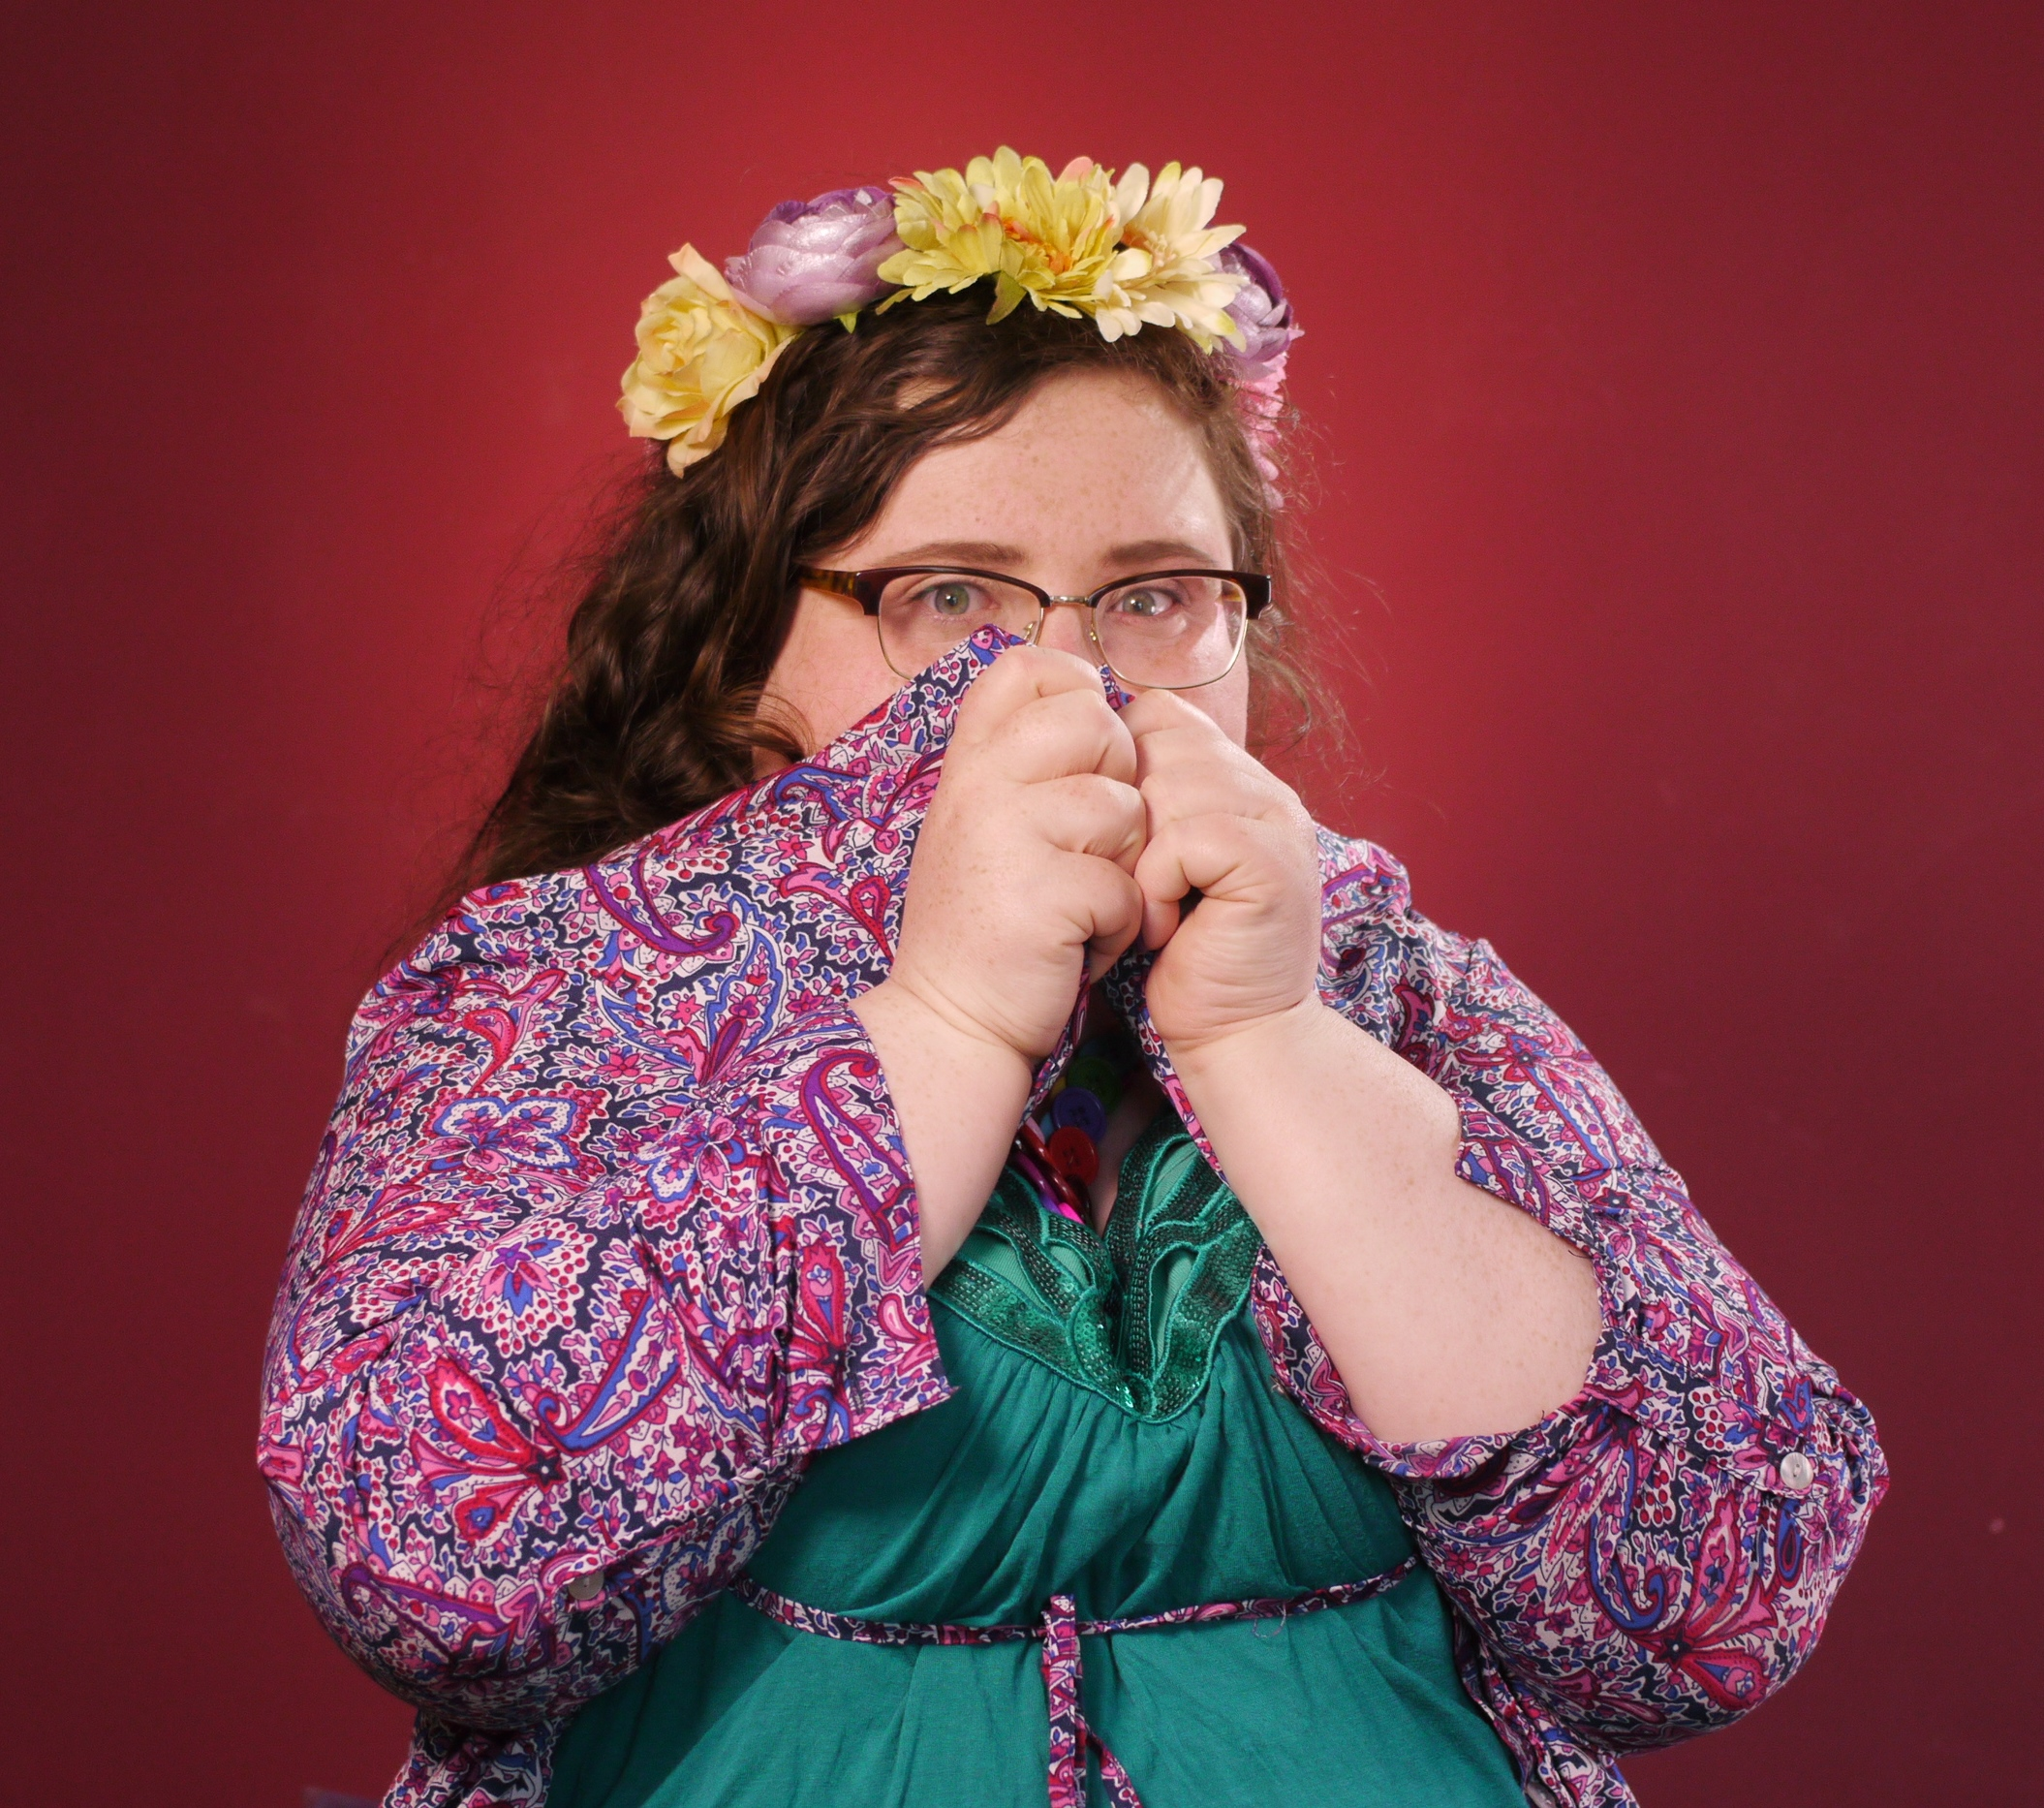 Alison Spittle MAKES A SHOW OF HERSELF Image